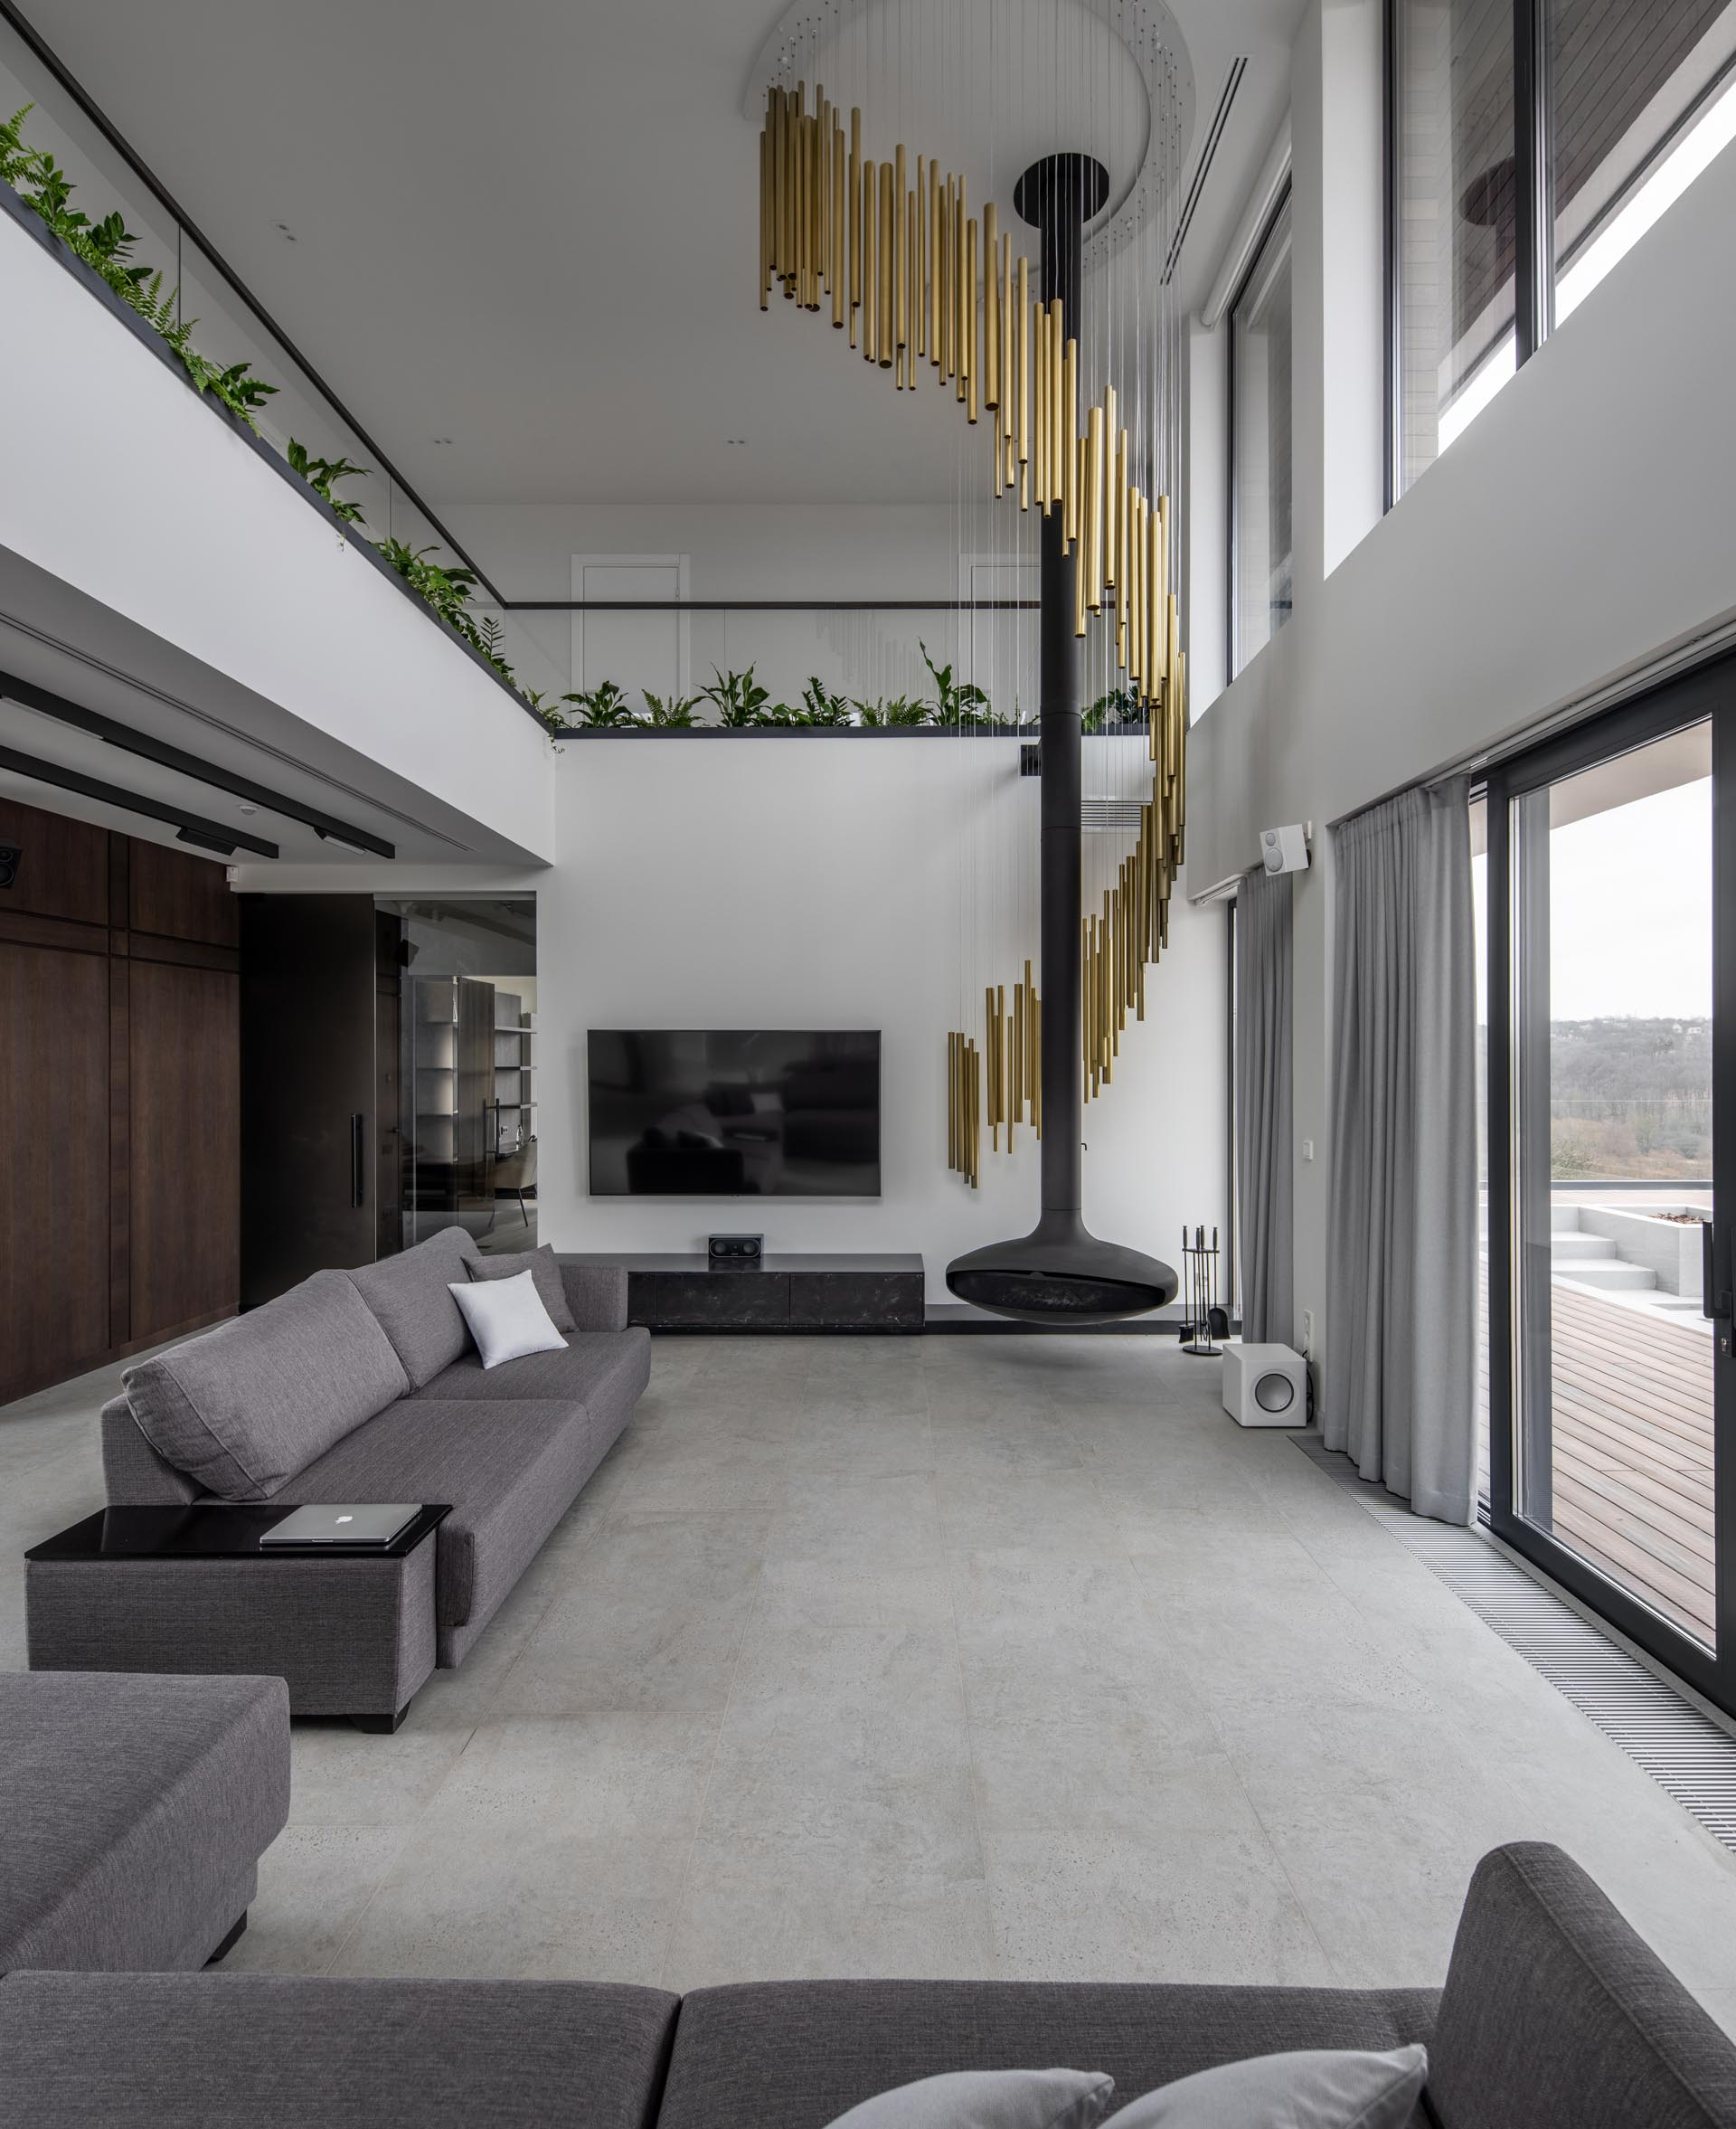 A modern living room with a suspended black fireplace and a sculptural lamp made from brass tubes whose design was inspired by wind chimes.